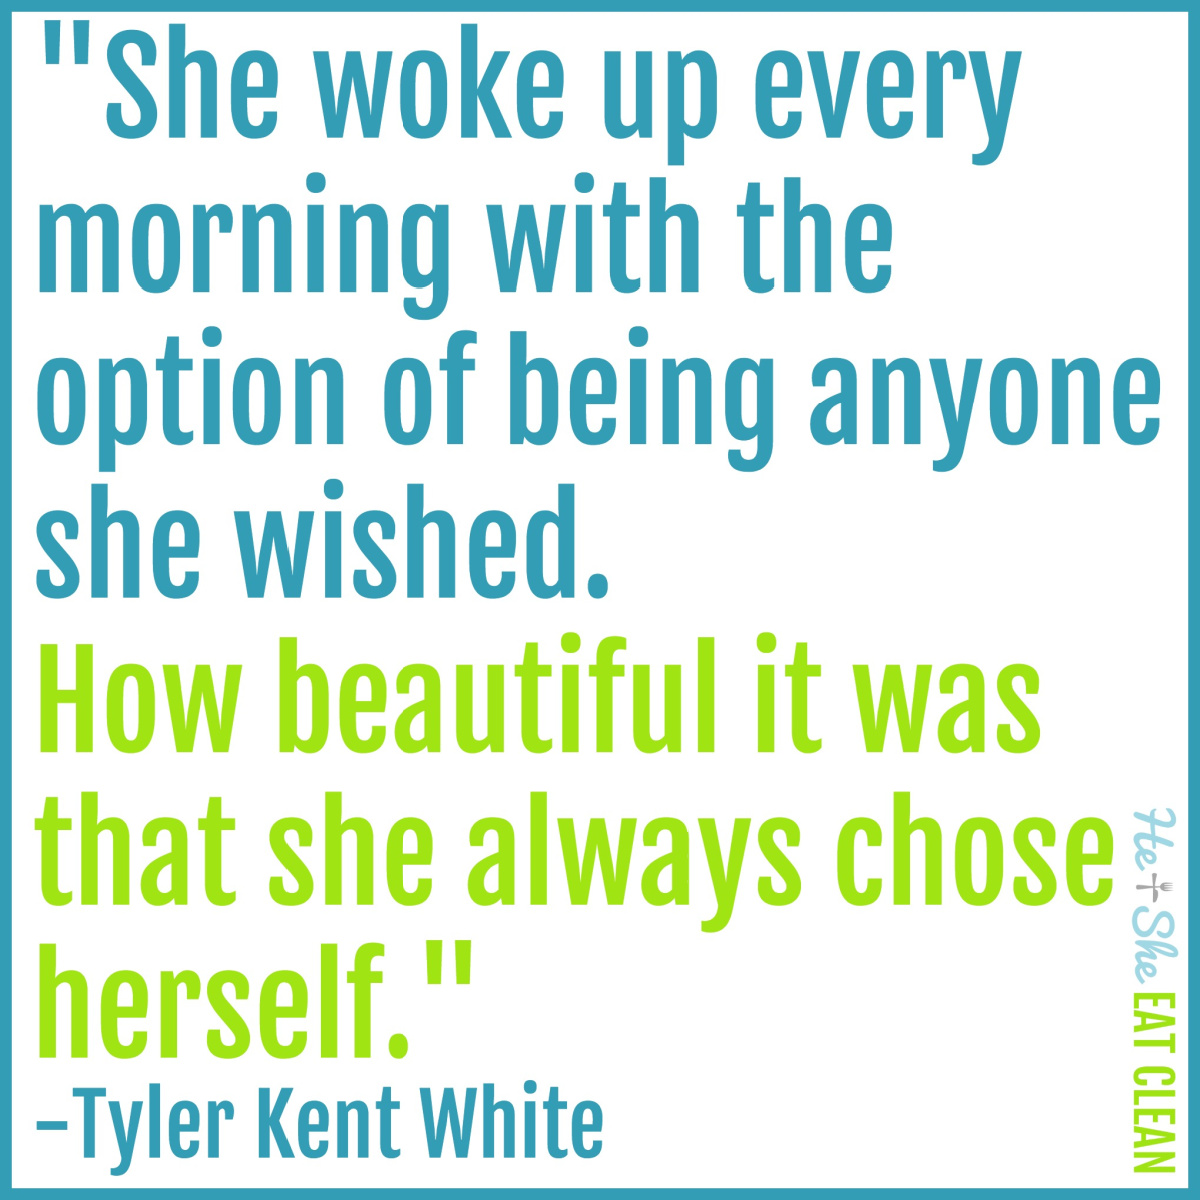 """text reads """"She woke up every morning with the option of being anyone she wished. How beautiful it was that she always chose herself."""" - Tyler Kent White"""